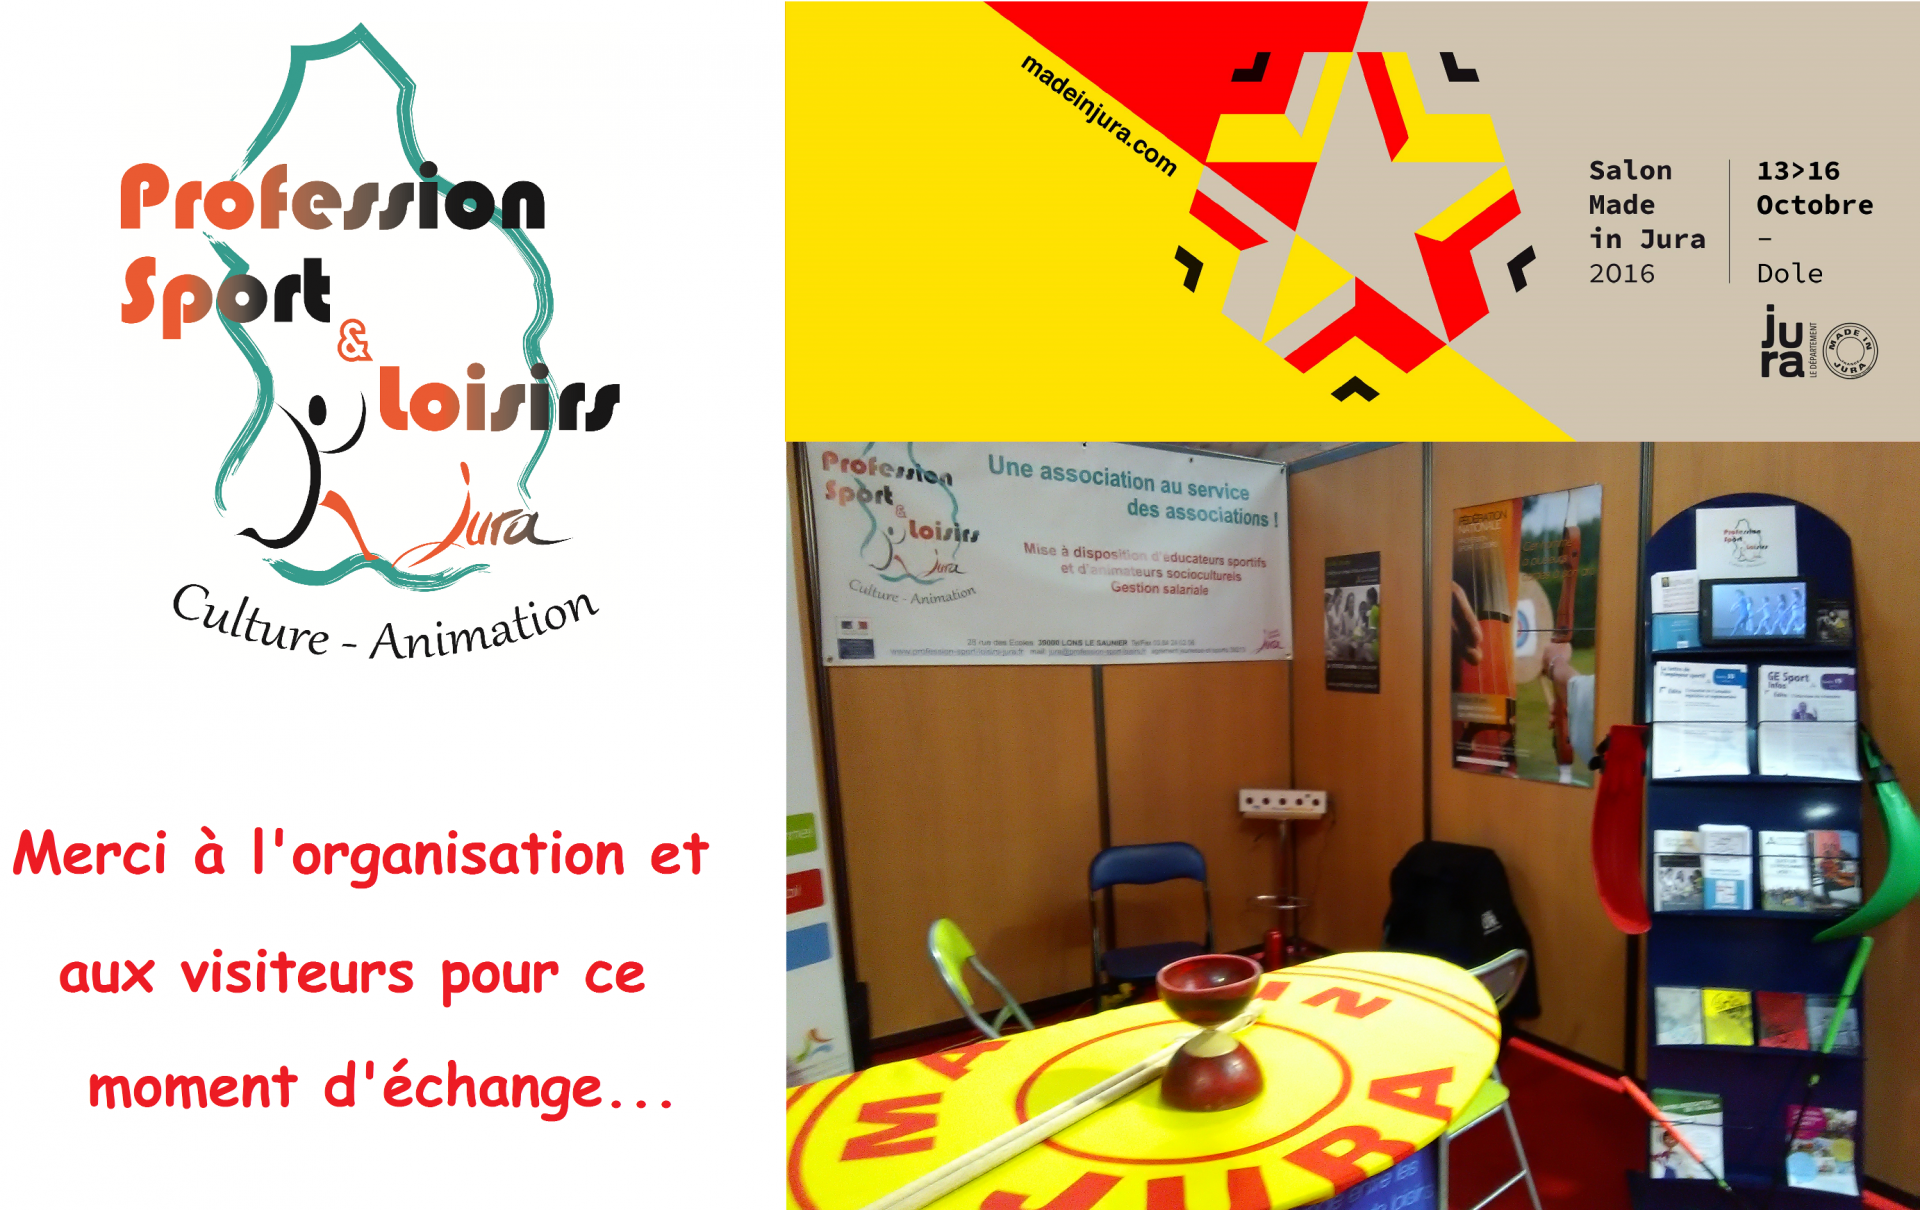 Stand made in jura 2016 merci